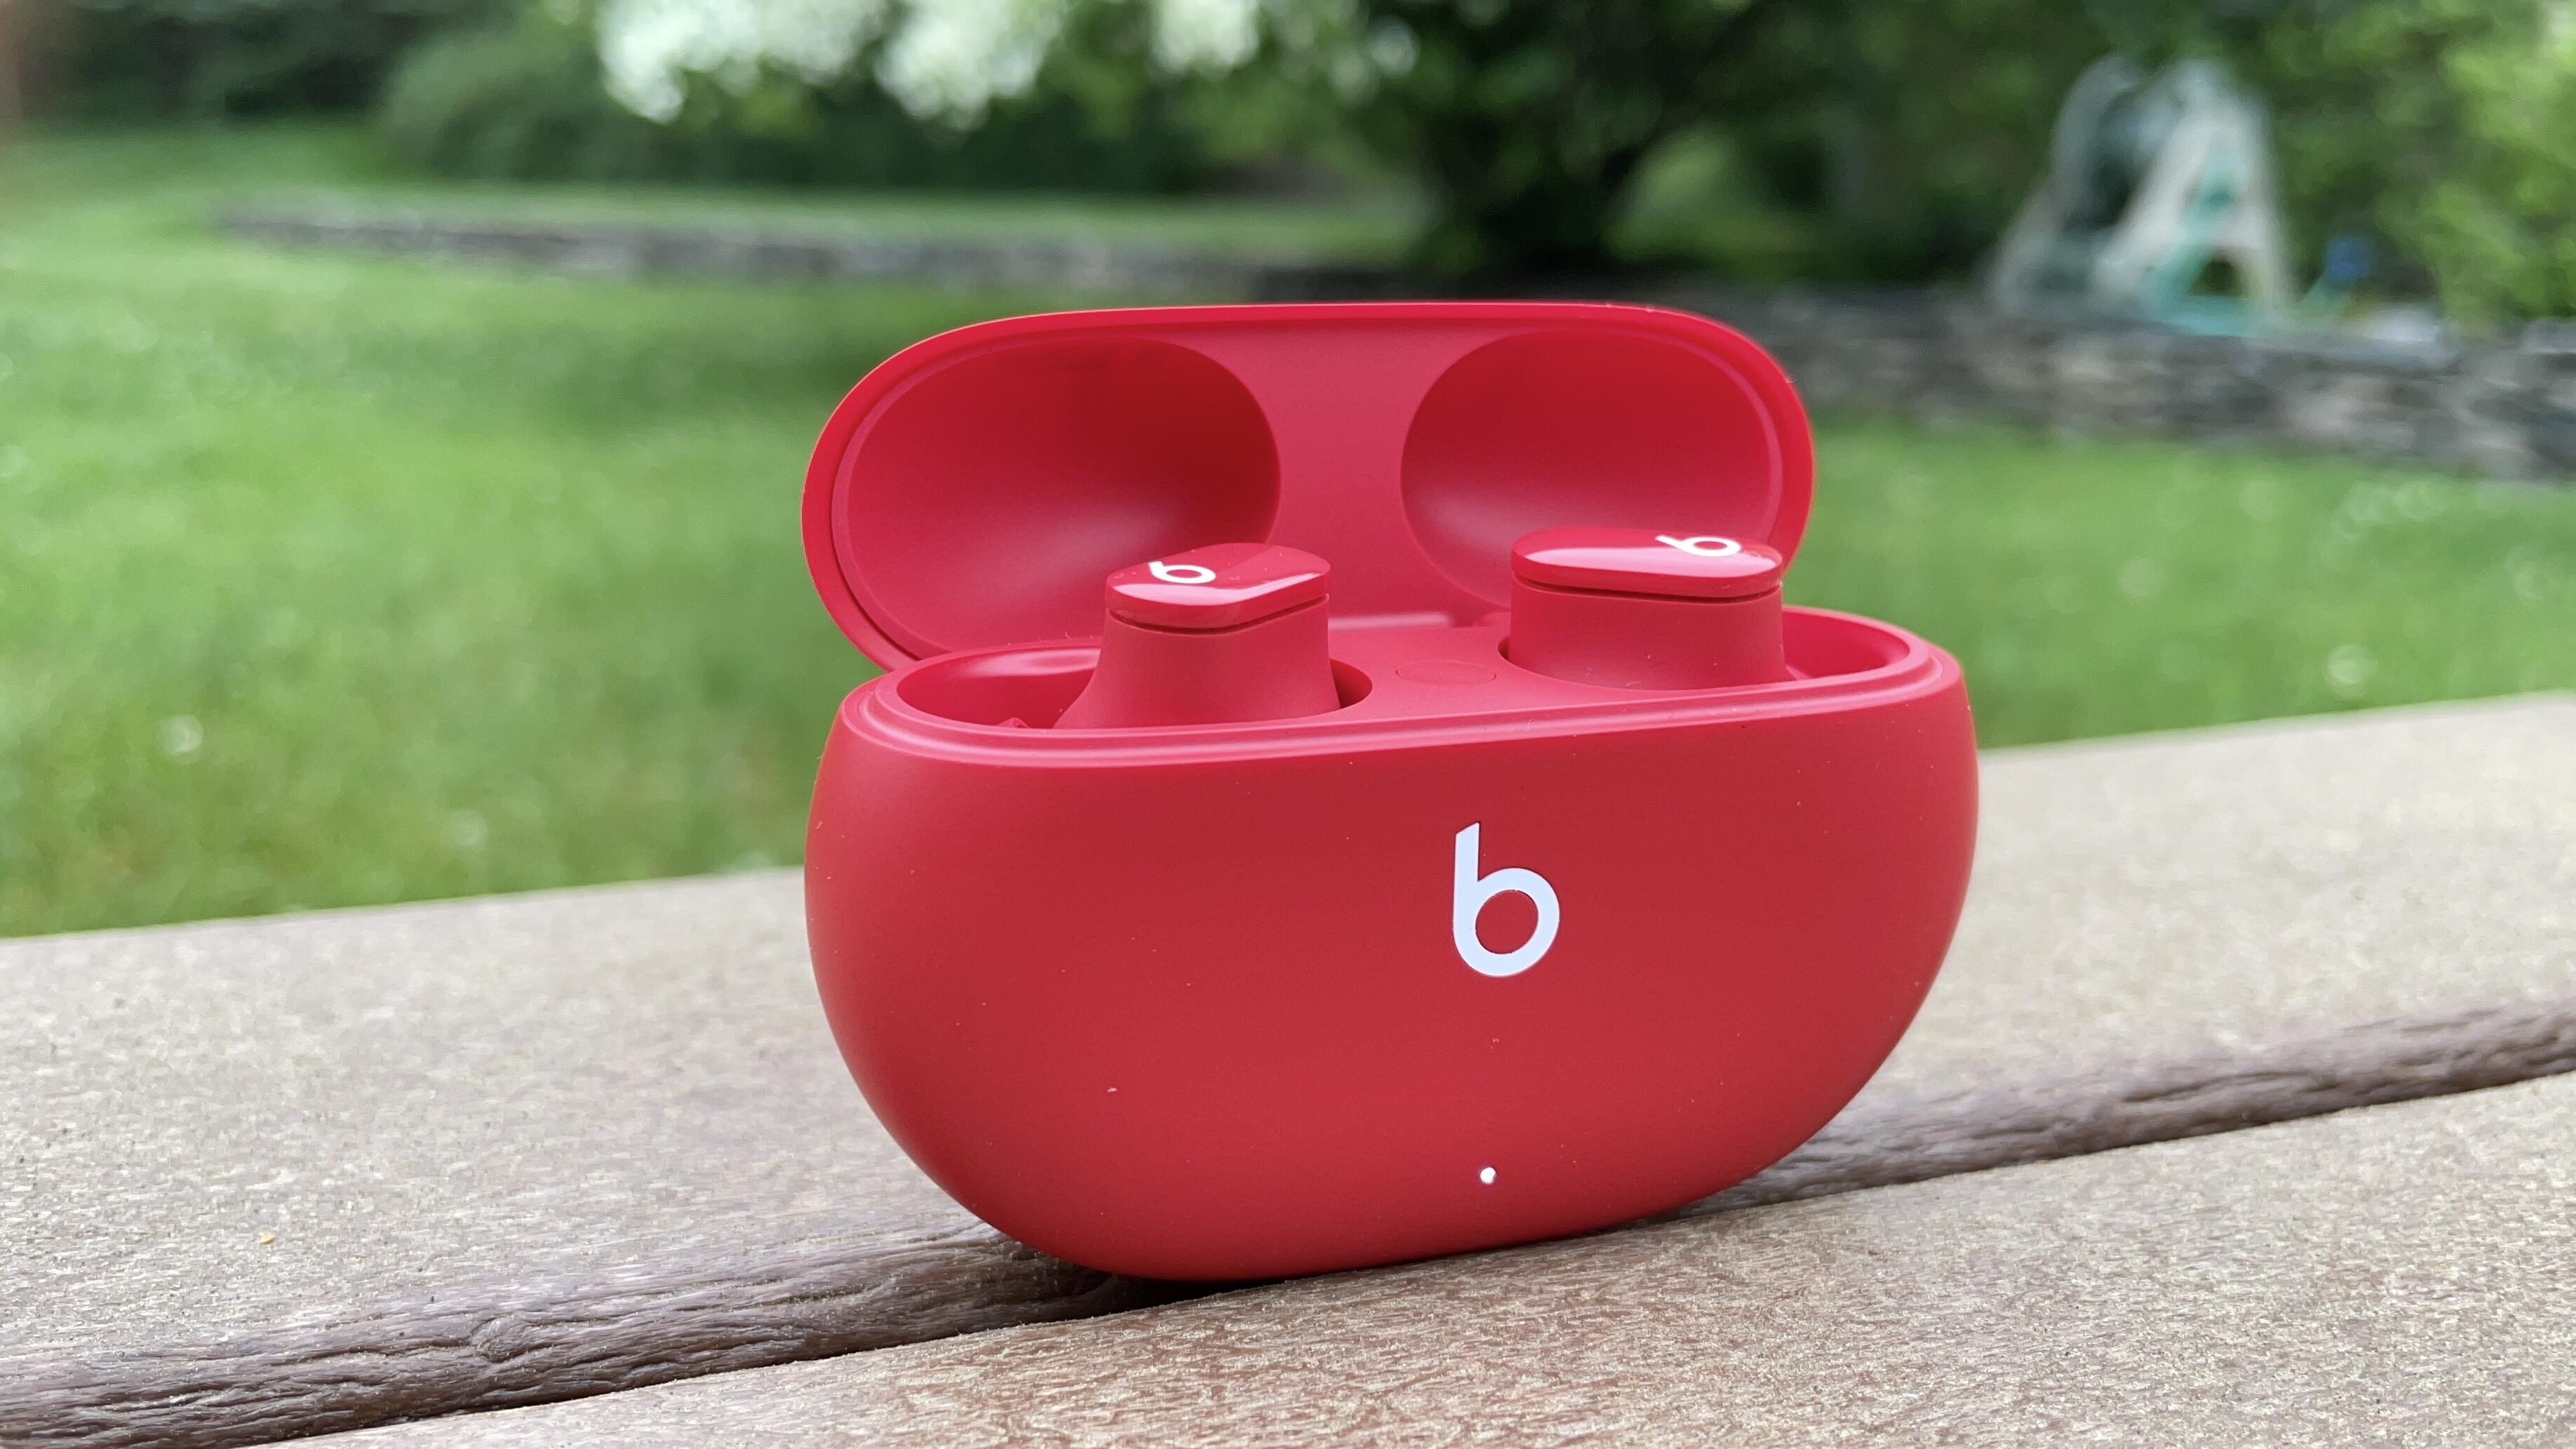 Beats Studio Buds review: The stemless AirPods we've always wanted?